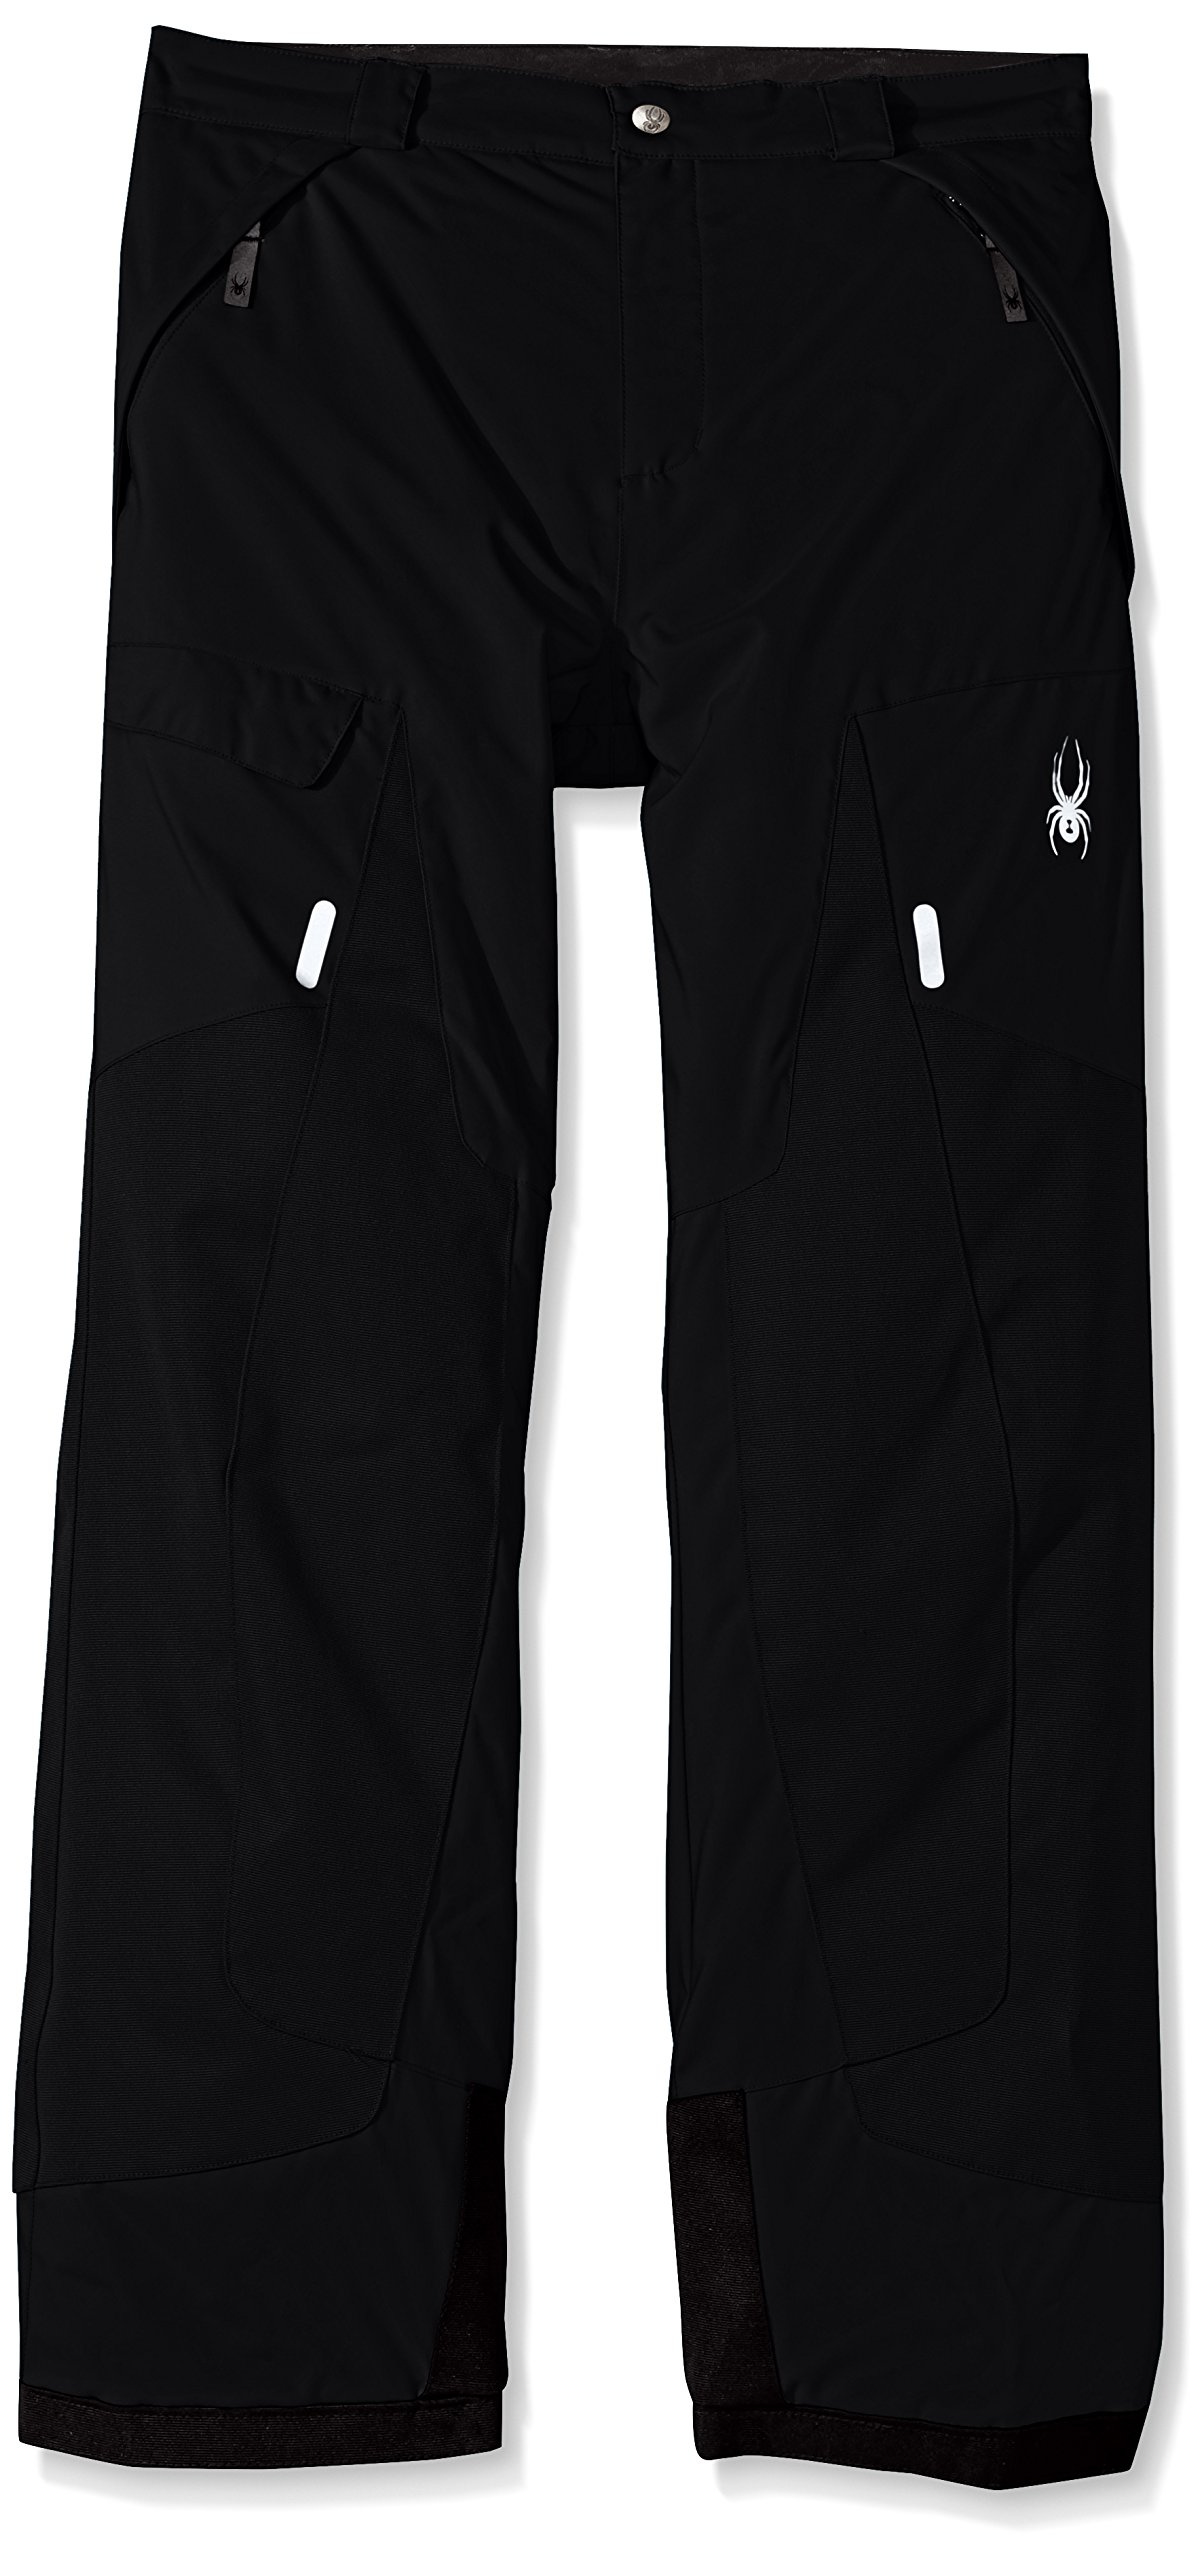 Spyder Boy's Action Ski Pant, Black, Size 16 by Spyder